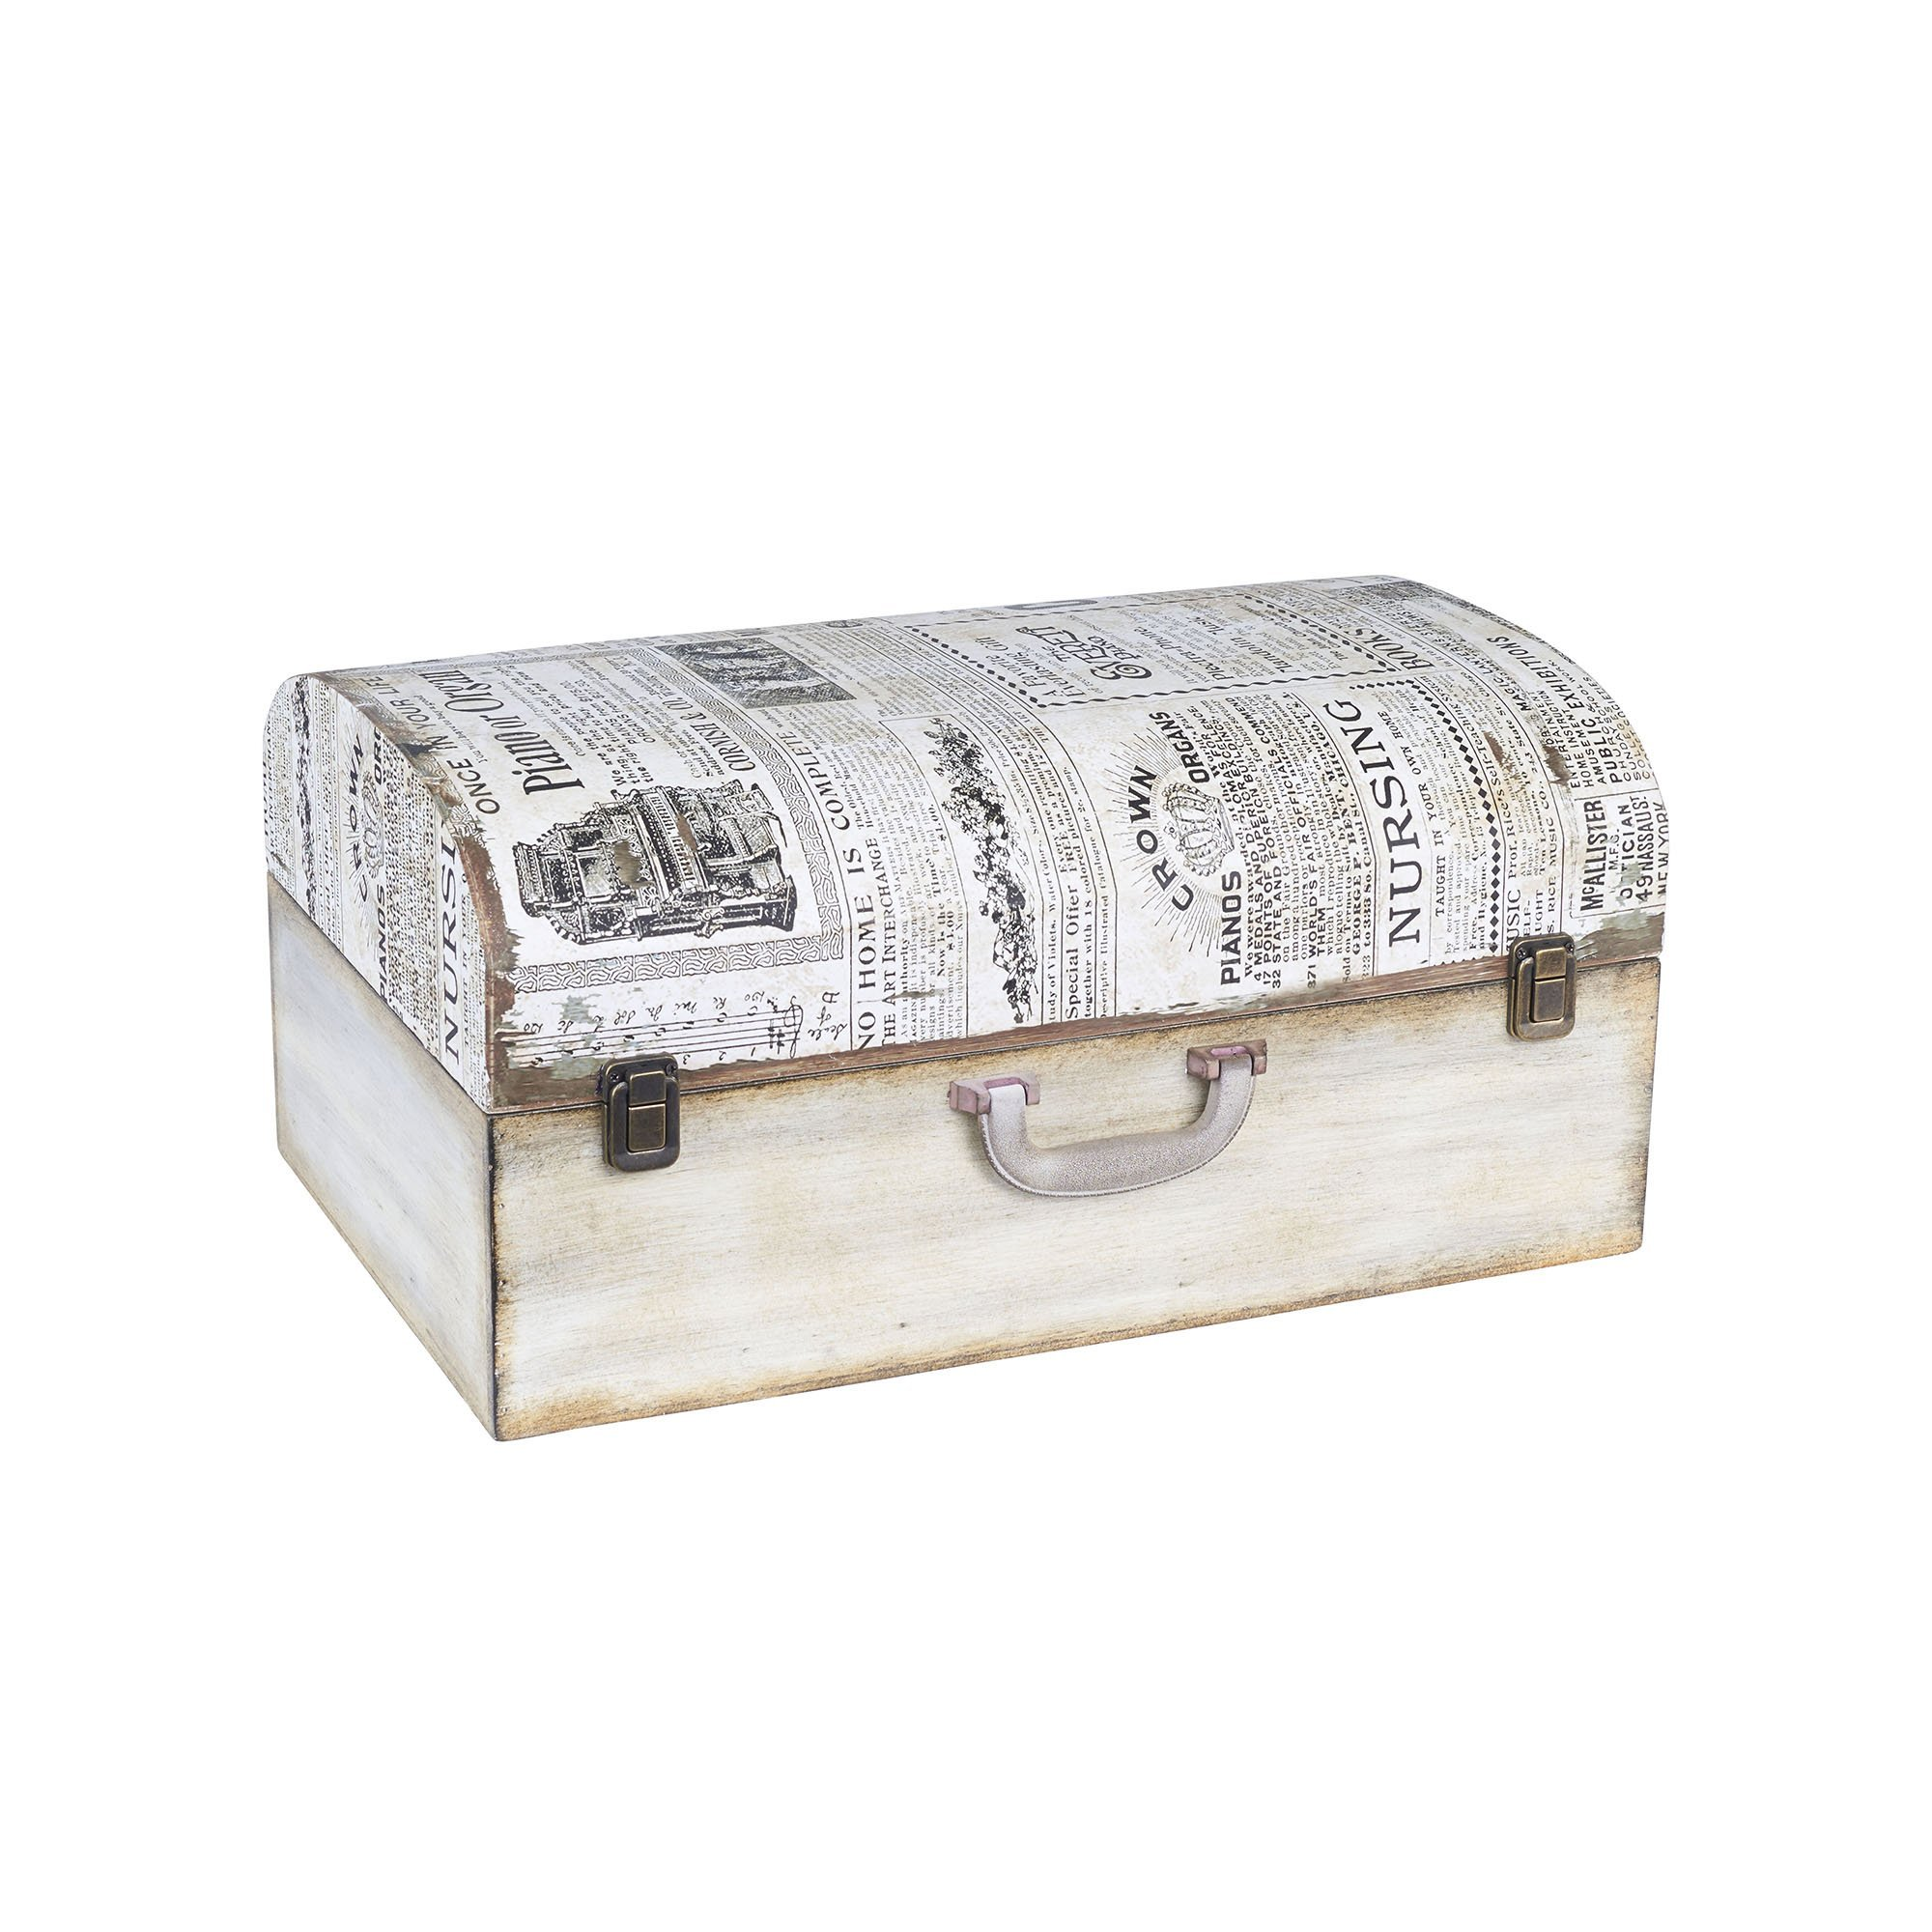 Household Essentials 9527-1 Vintage Wood Suitcase Storage Trunk, Large, White/Newspaper